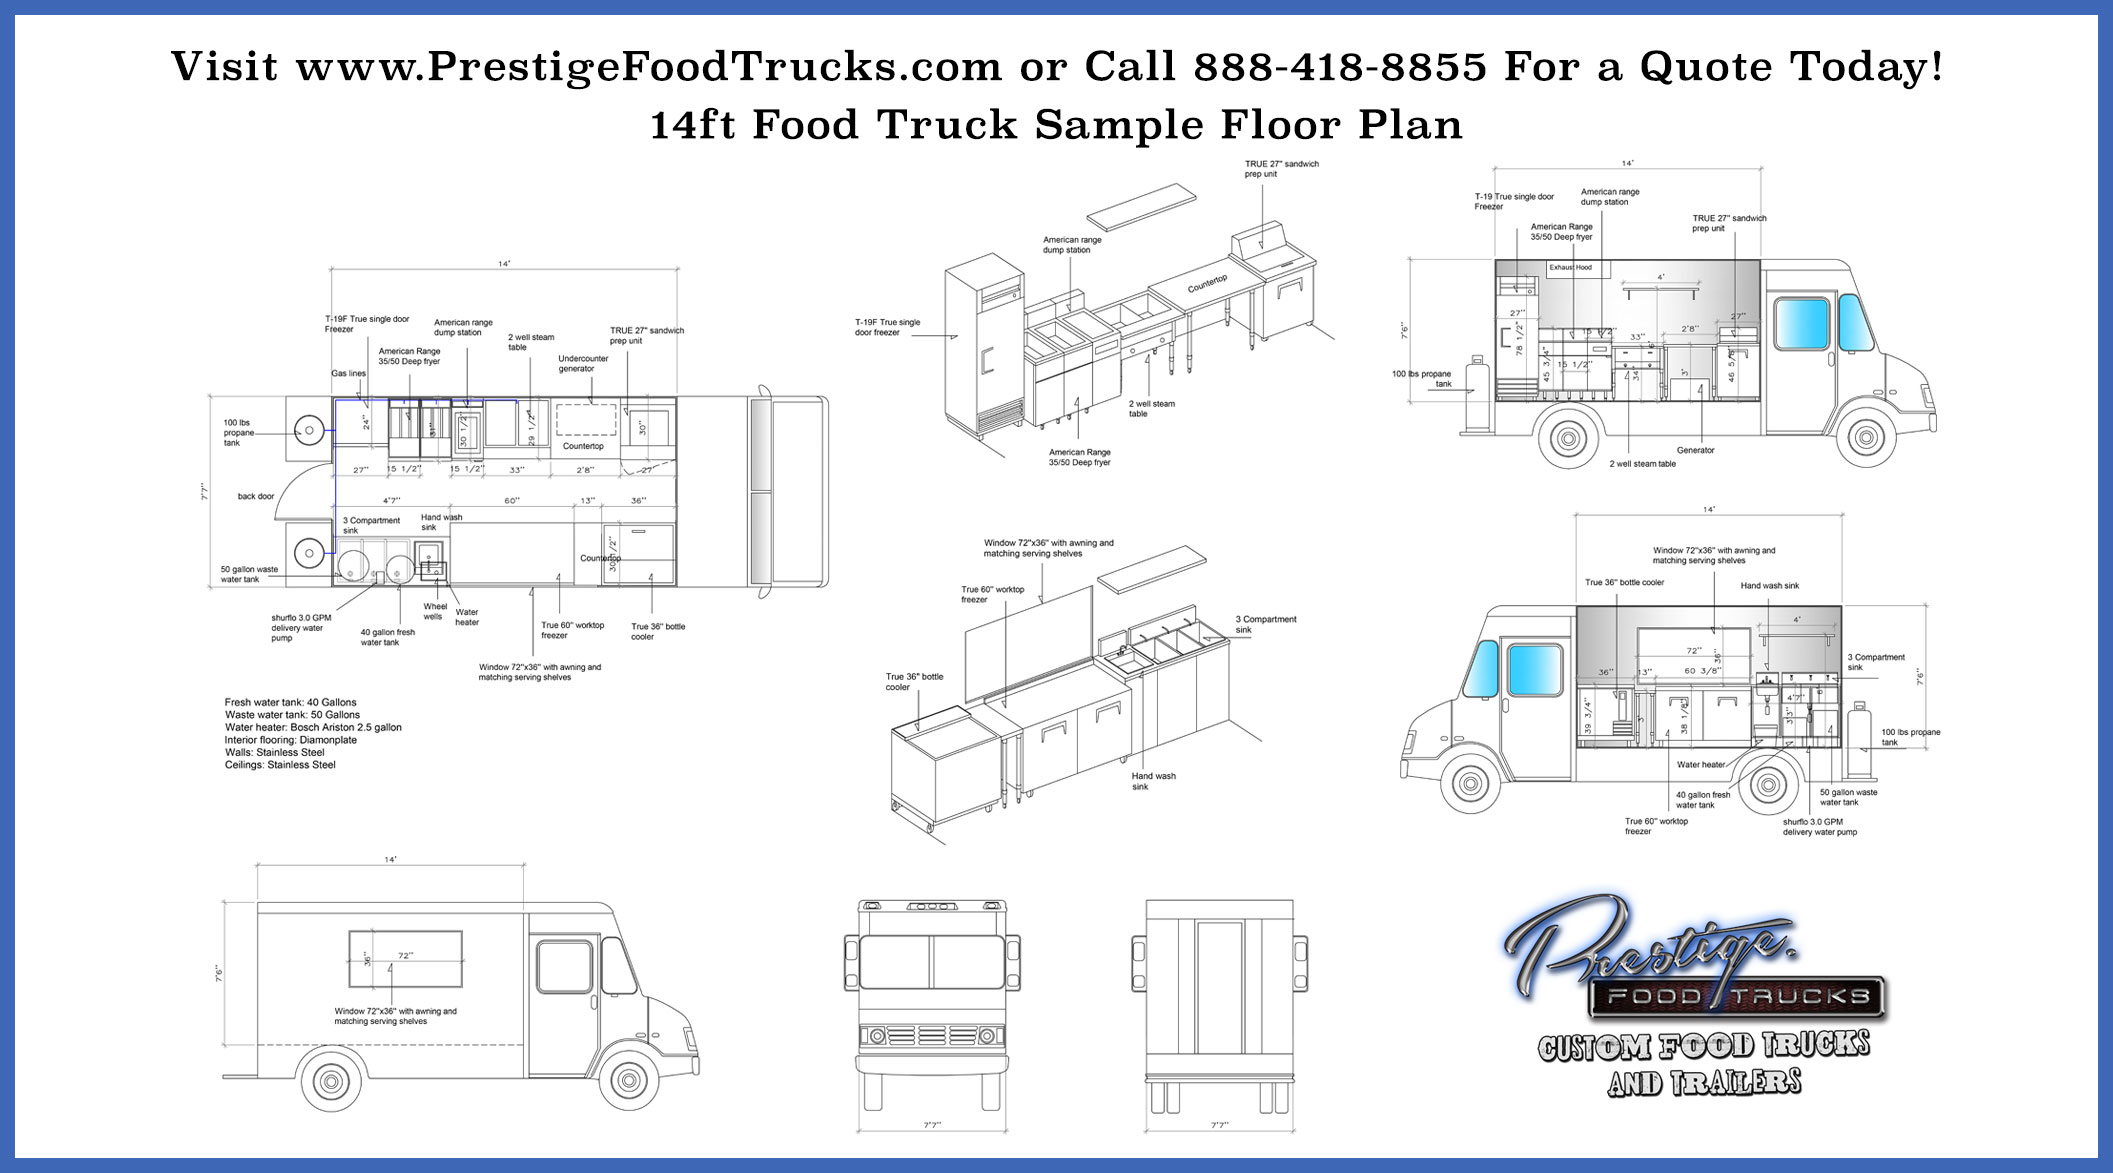 Custom food truck floor plan samples custom food truck for Food truck layout plans